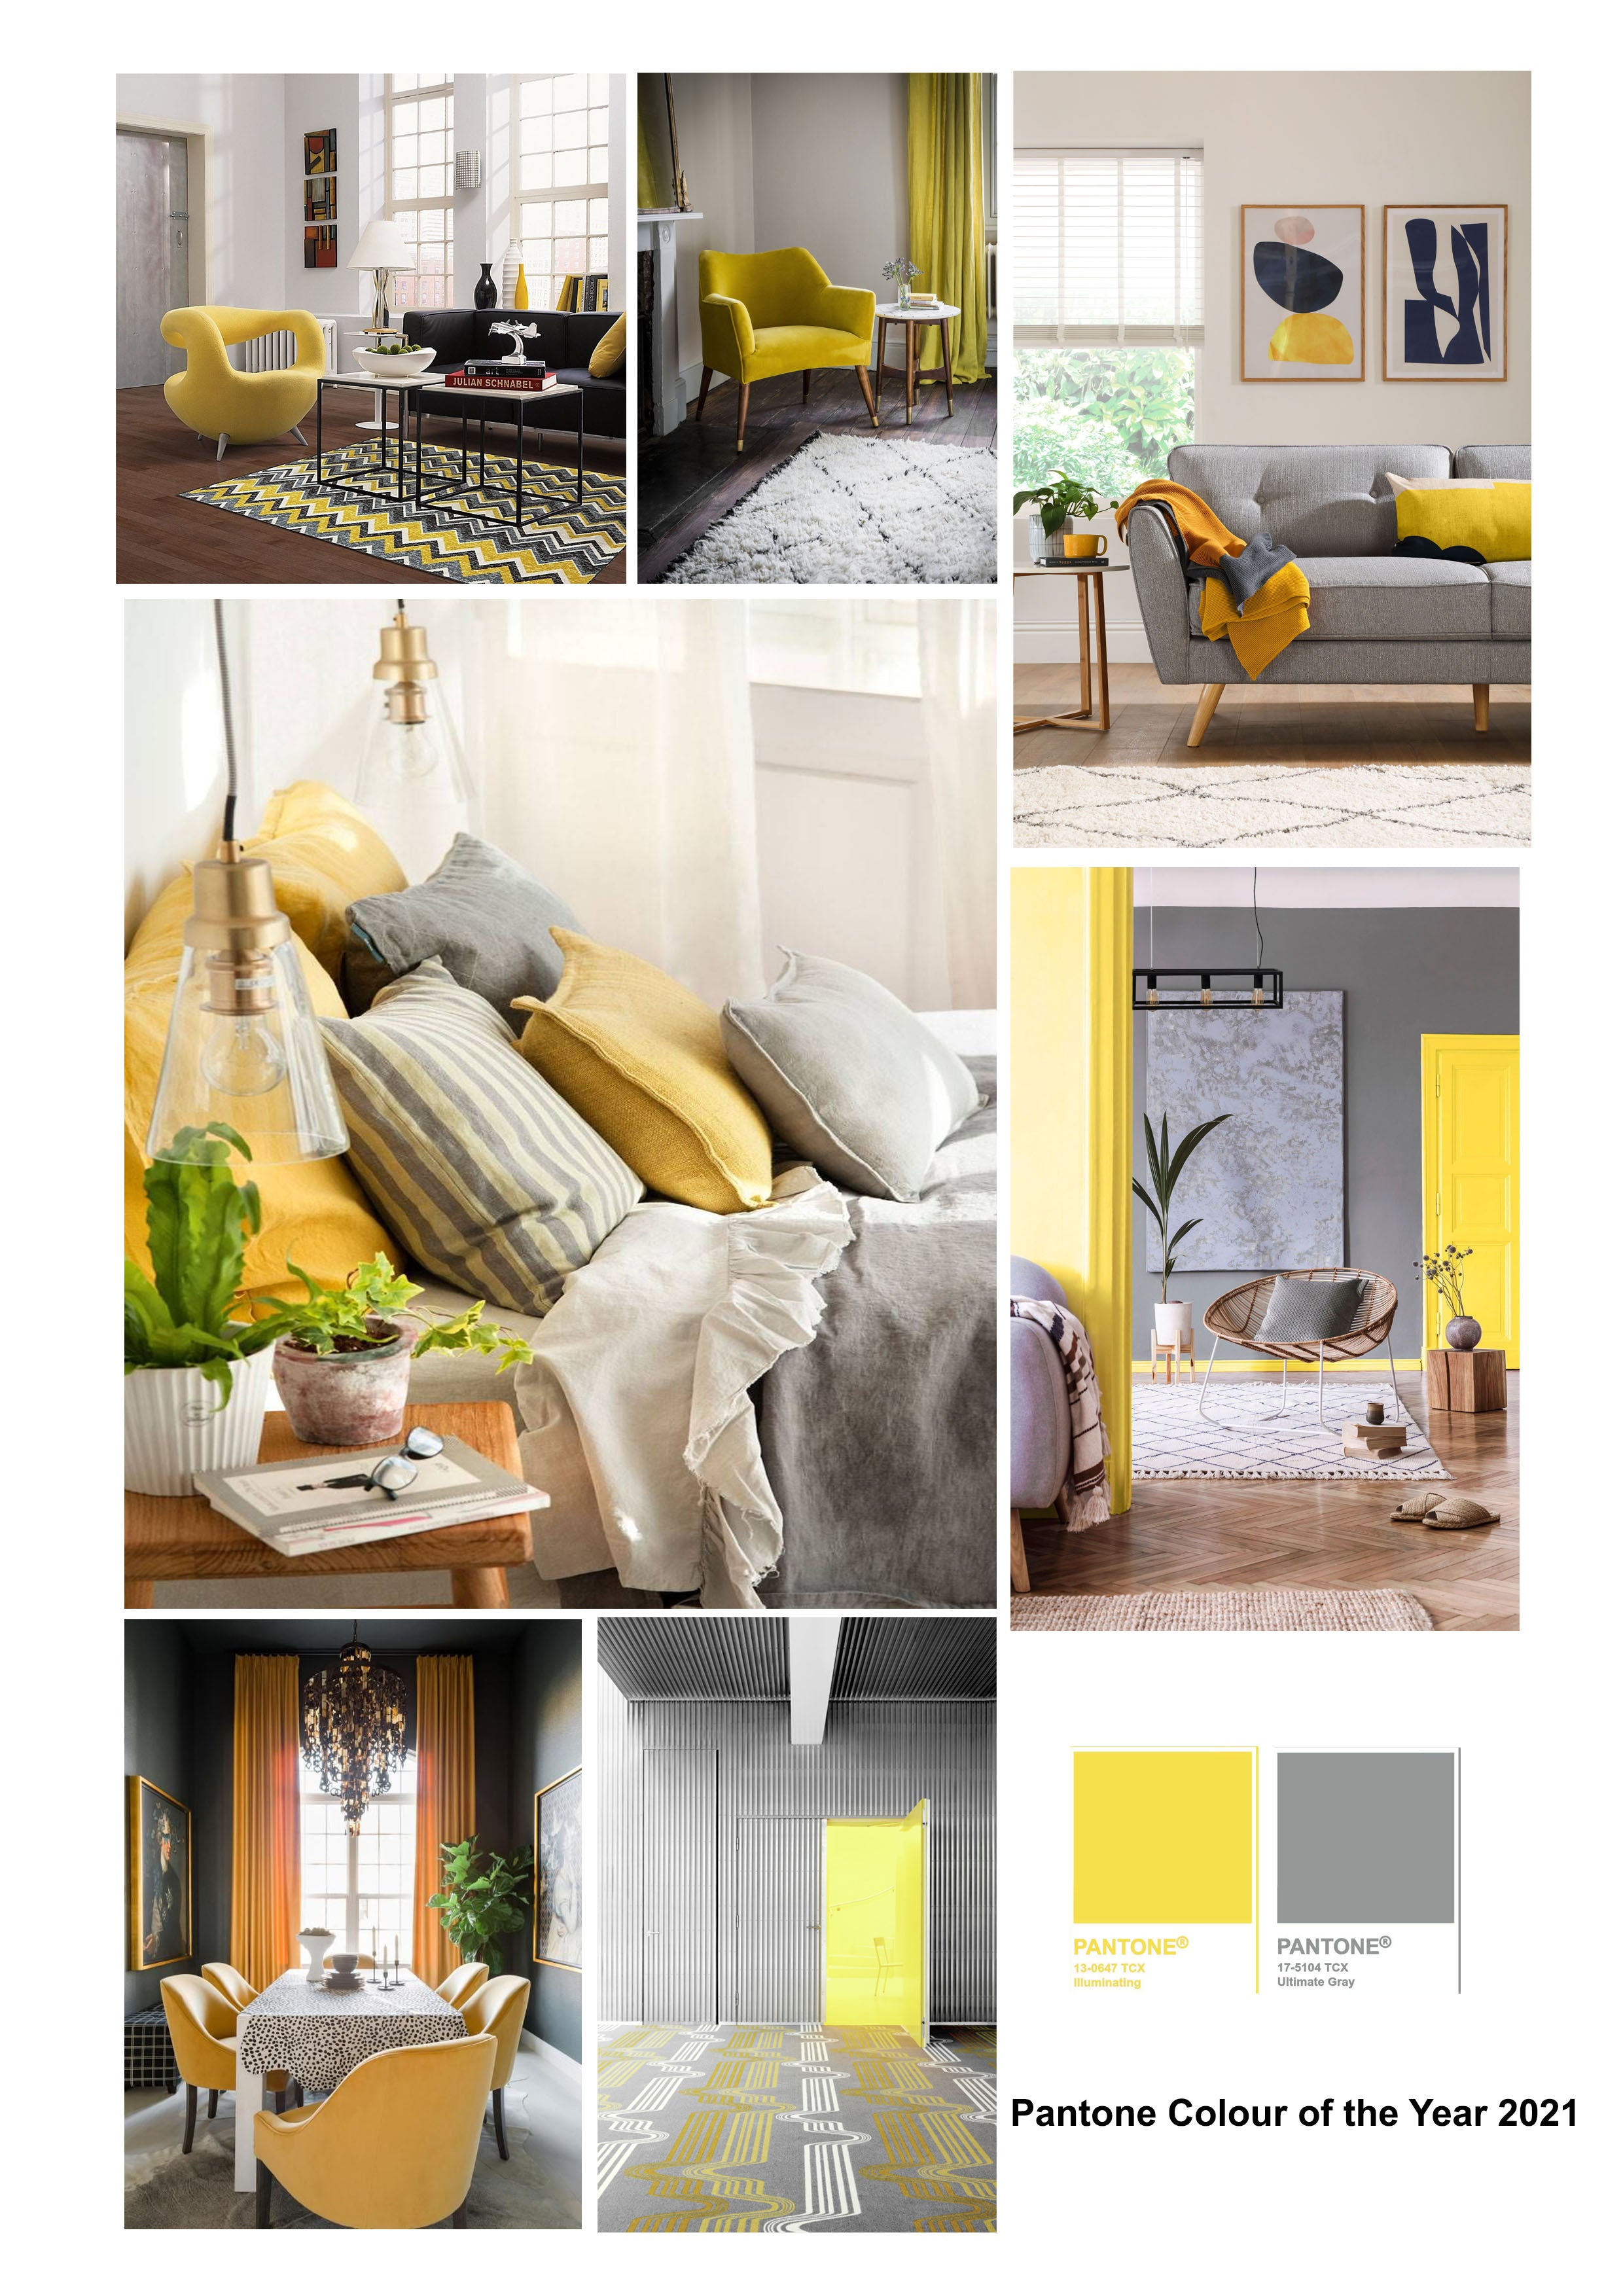 Pantone Colour of the Year 2021, Colour Trends 2021